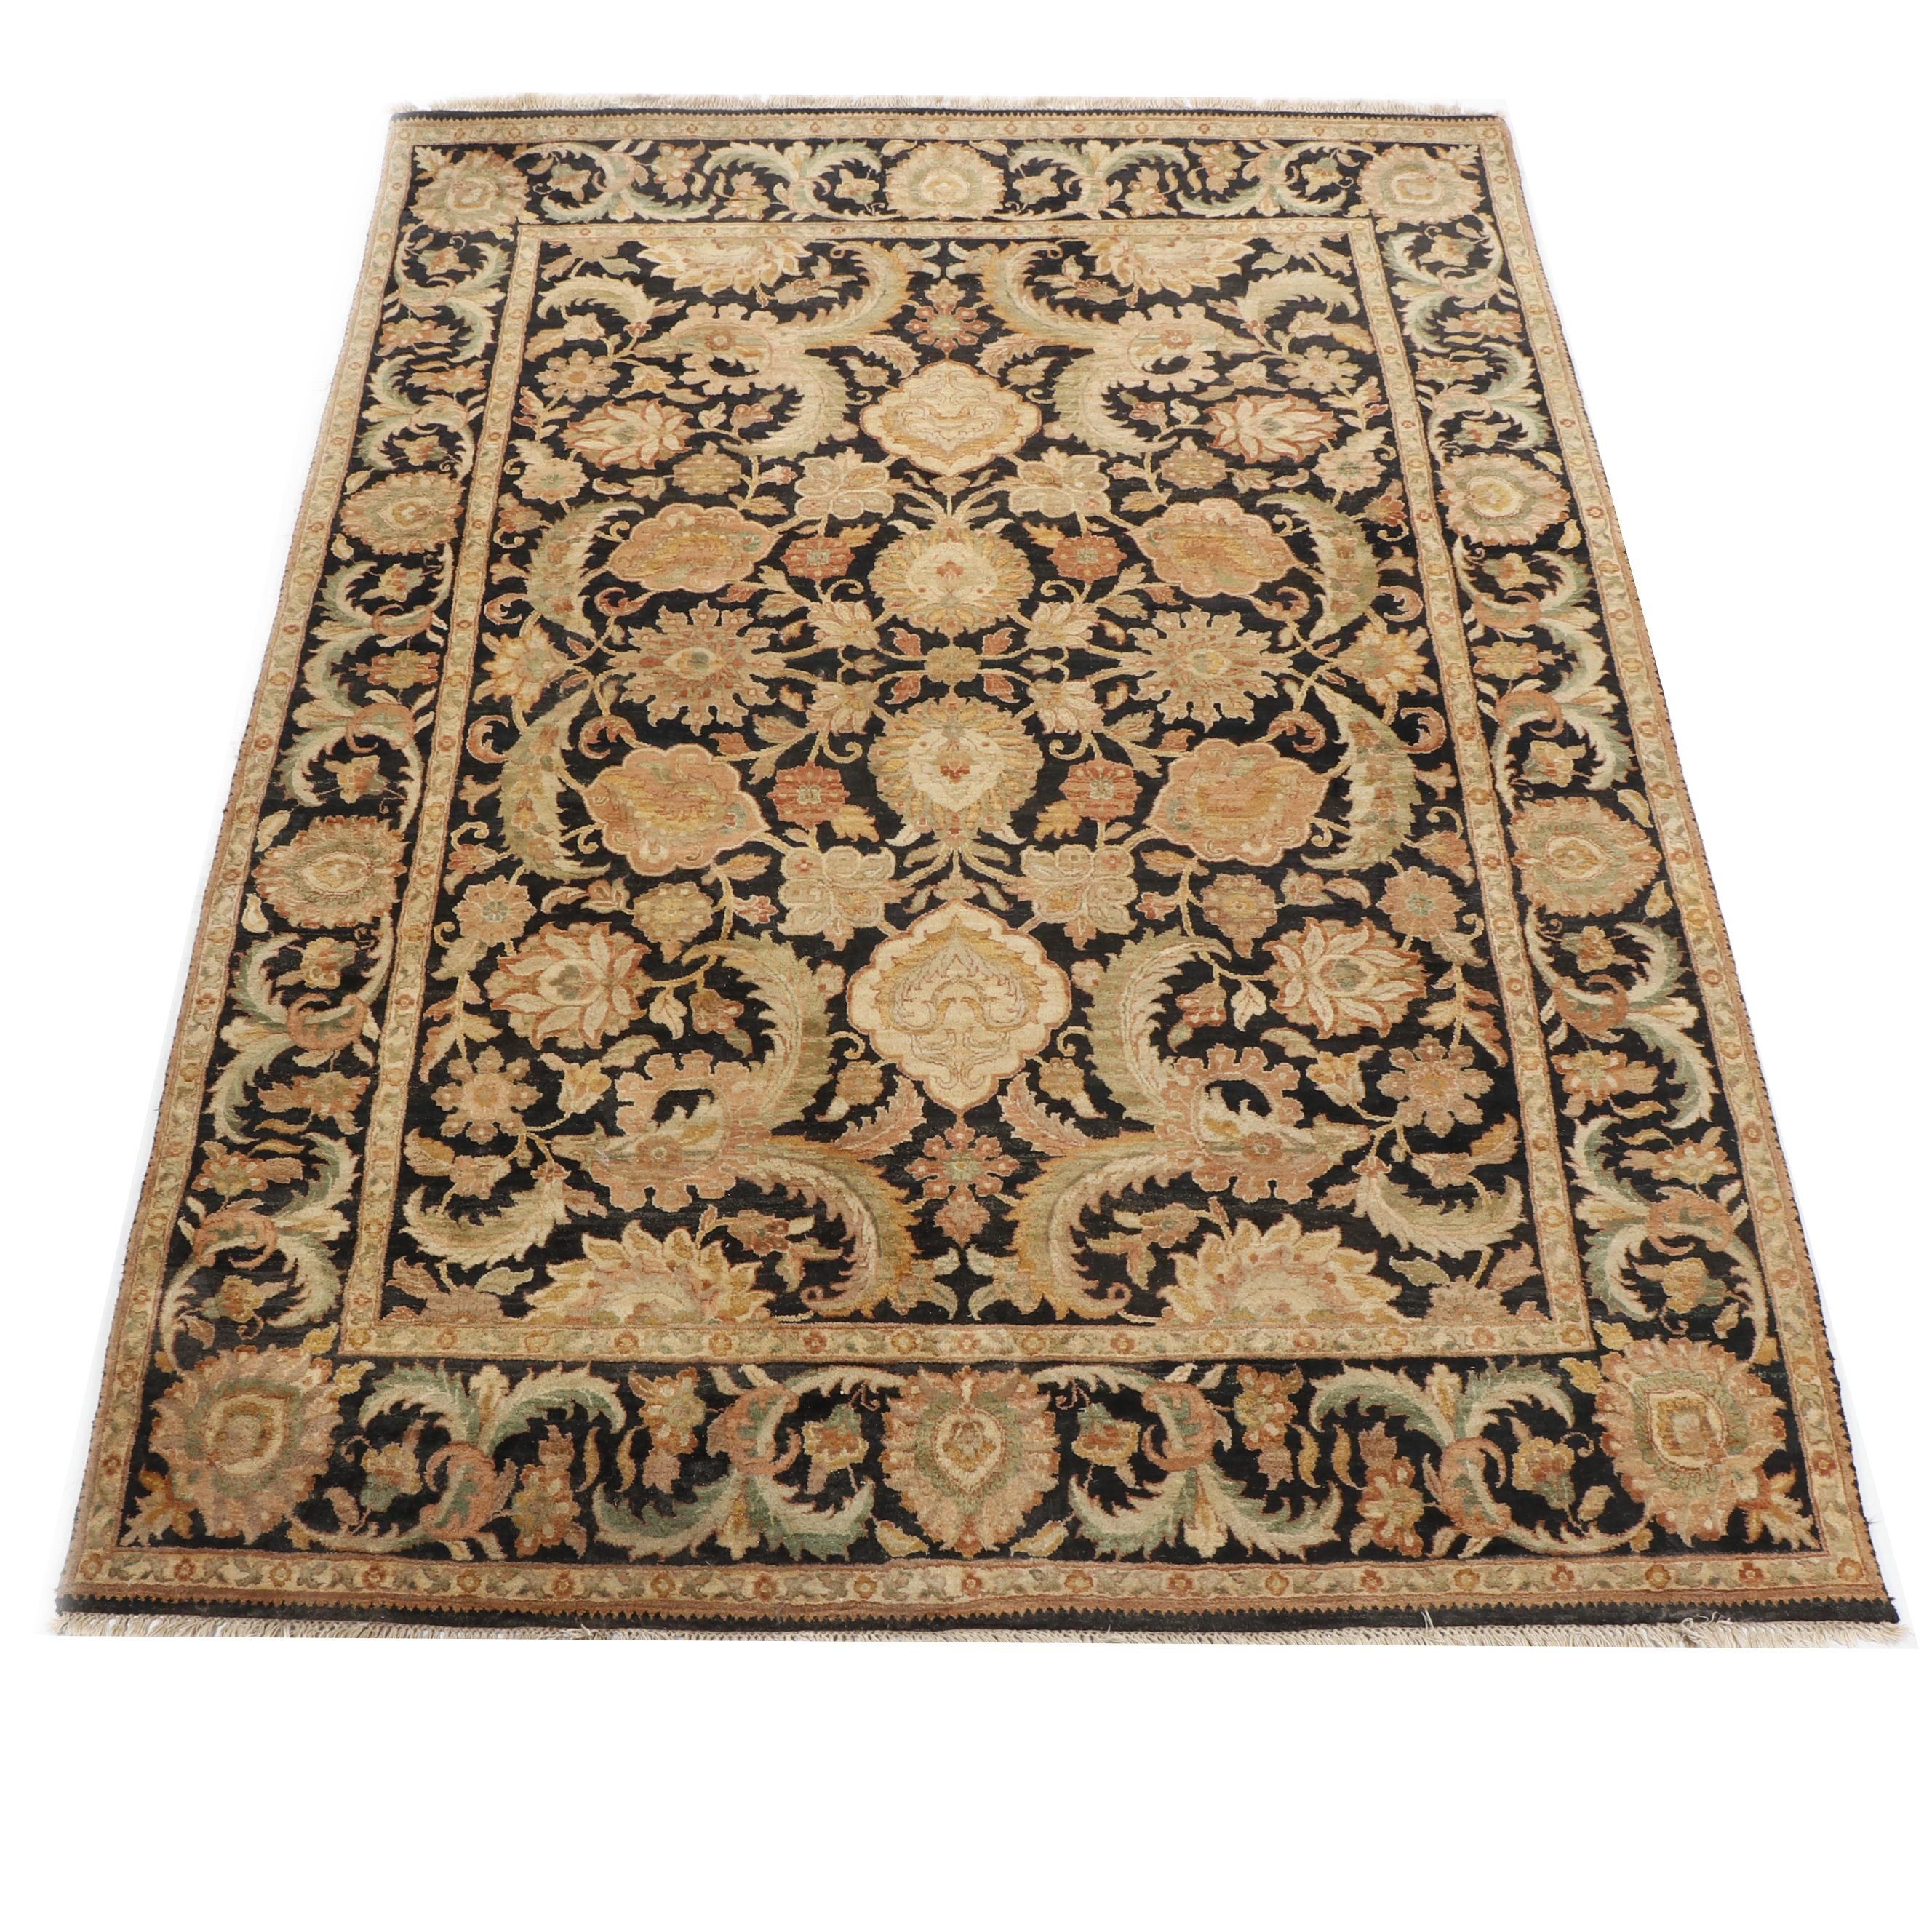 Hand-Knotted Indian Agra Style Wool Rug